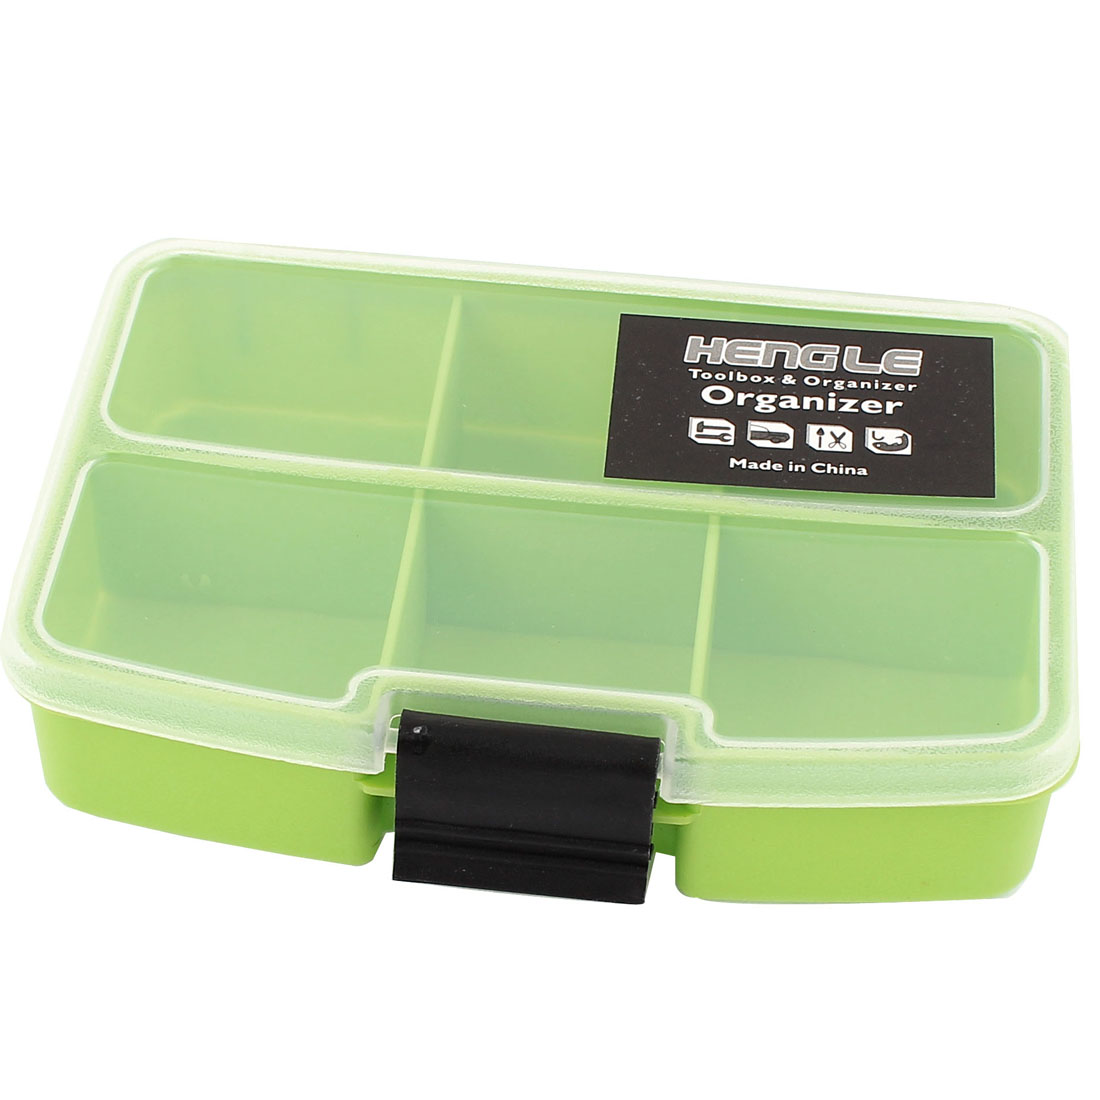 Fishing Tool Crafts Container Organizer Storage Box 6 Compartments Green